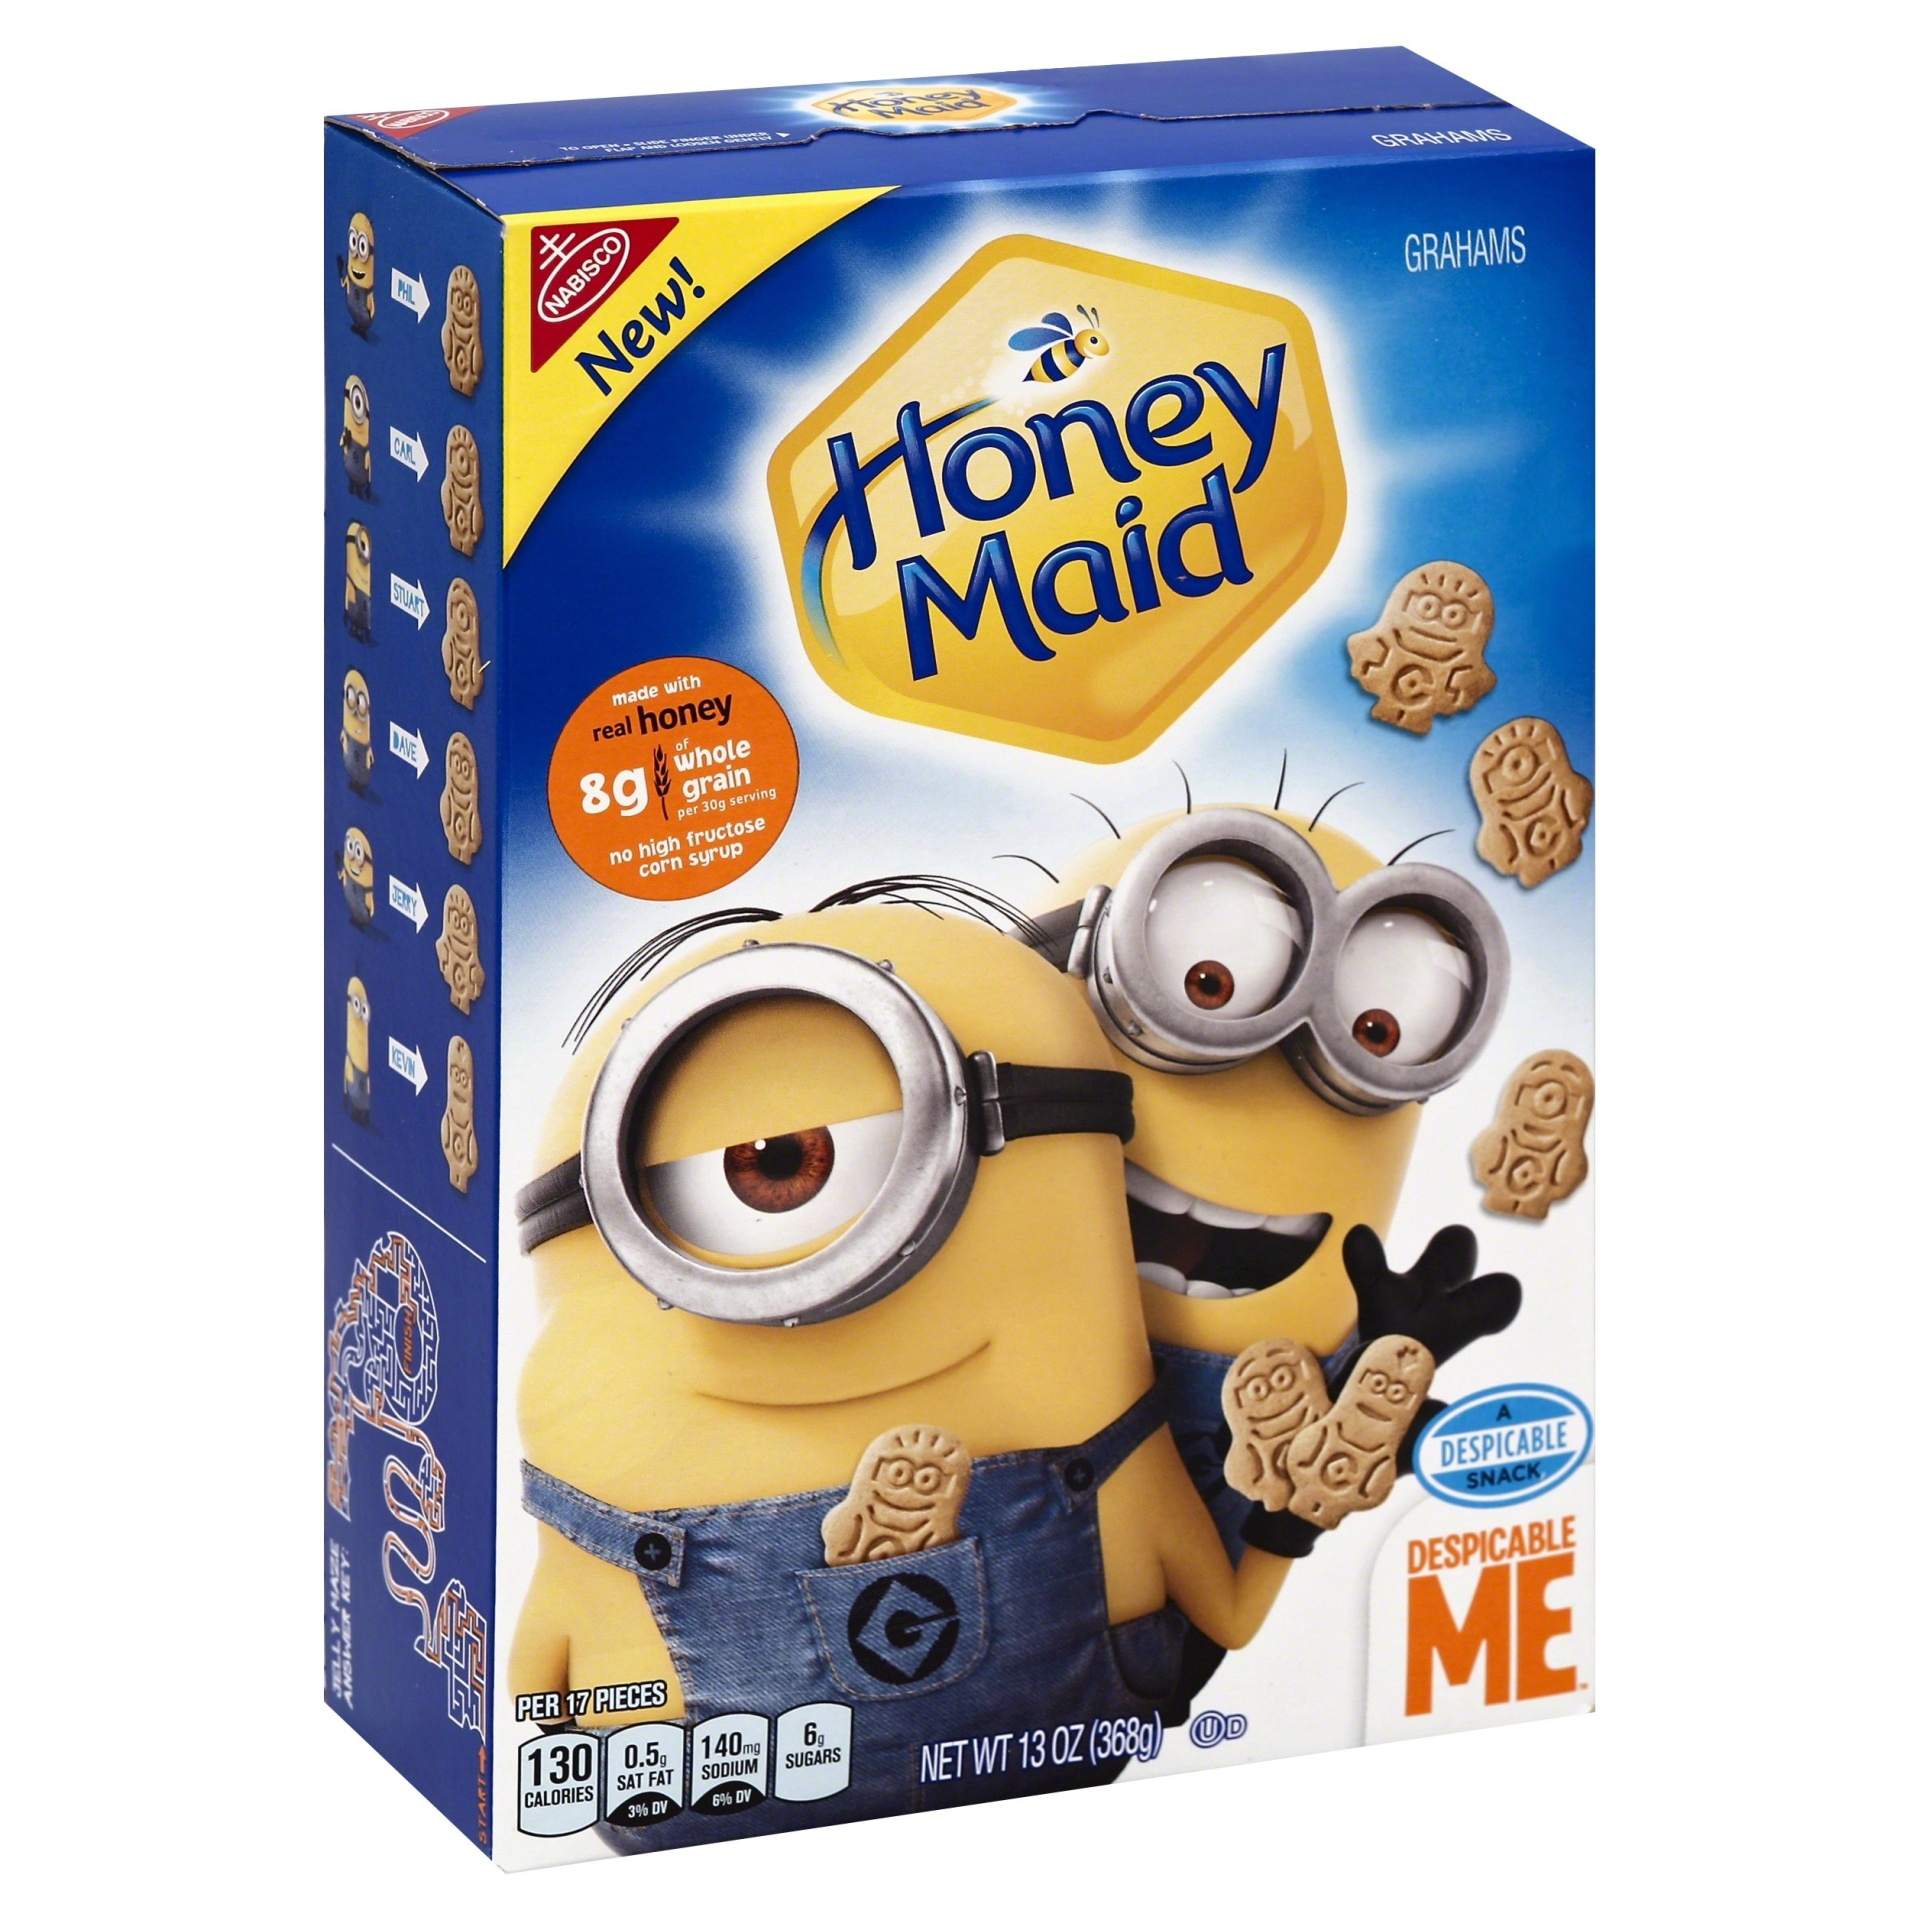 slide 1 of 8, Honey Maid Despicable Me Graham Crackers,